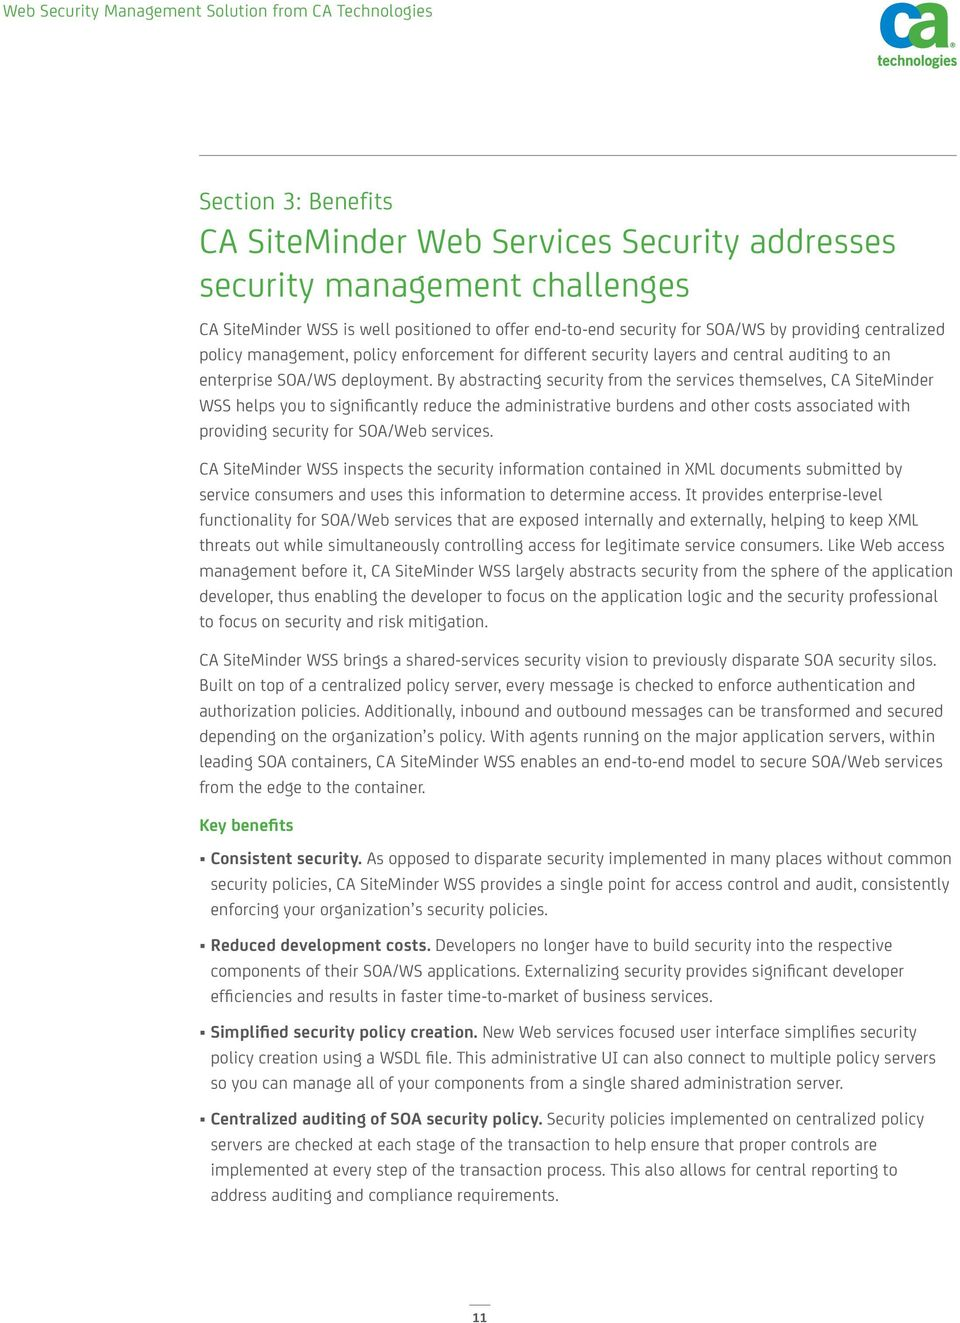 By abstracting security from the services themselves, CA SiteMinder WSS helps you to significantly reduce the administrative burdens and other costs associated with providing security for SOA/Web